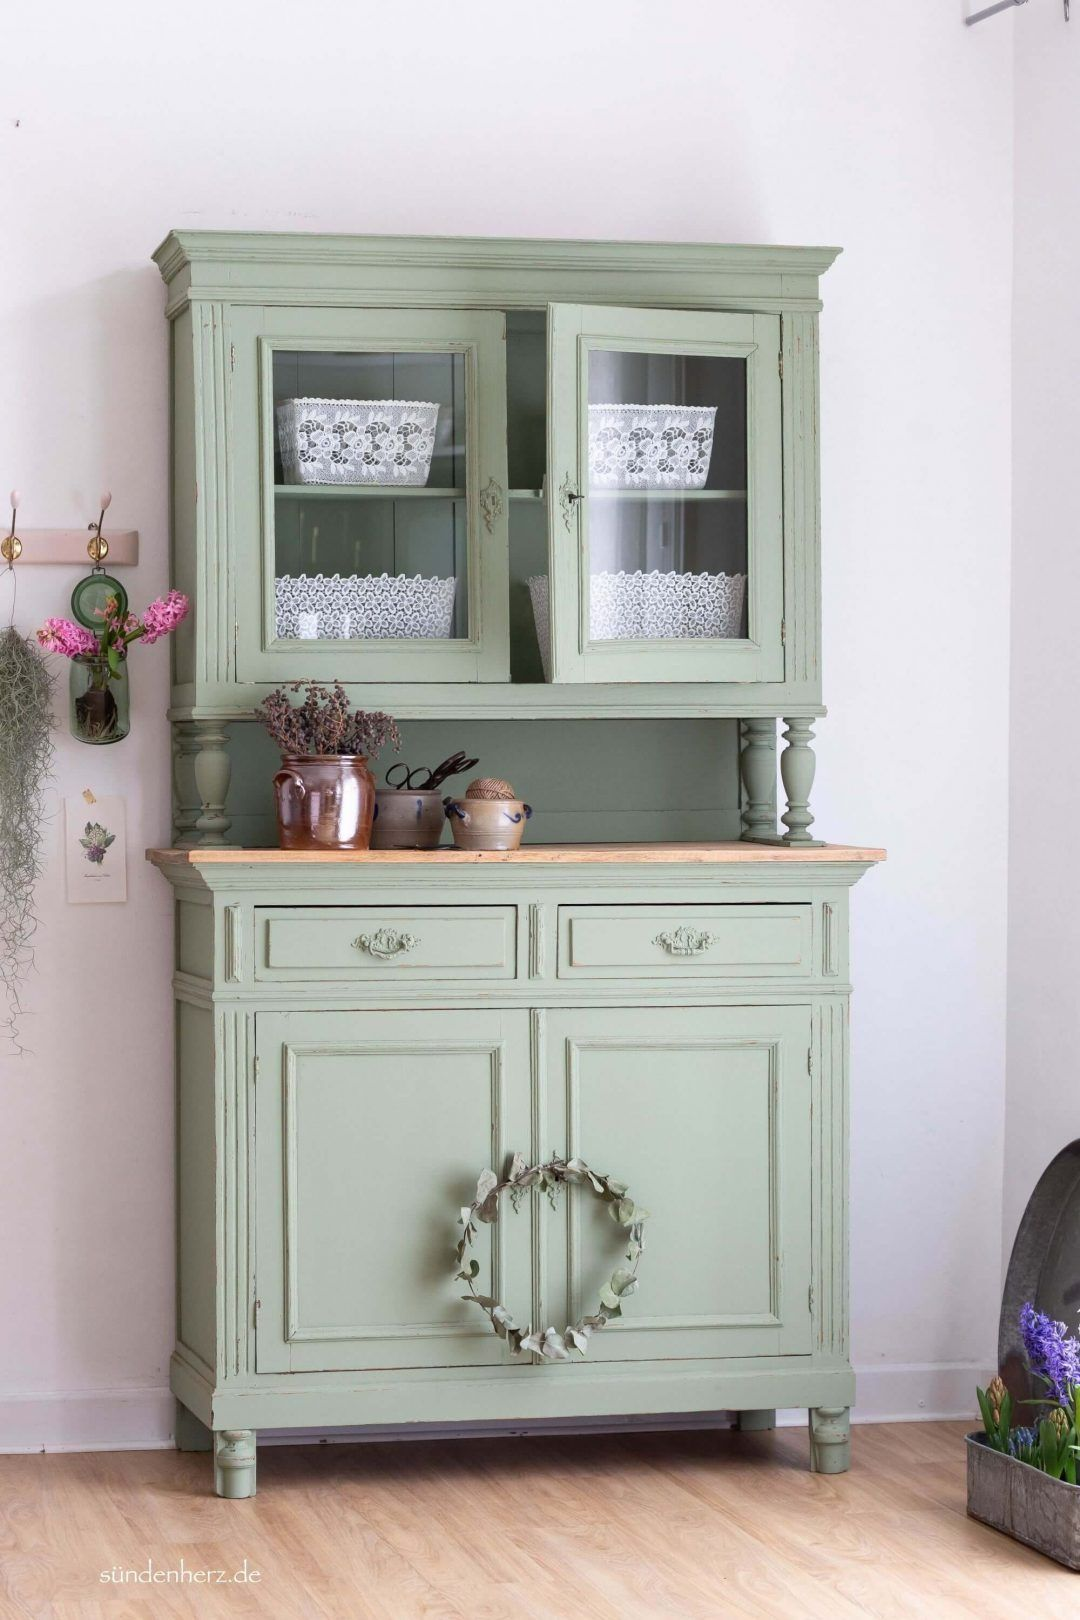 25 Lovely Shabby Chic Kitchen Ideas (Striking Rooms For Cooking) - 0A1A9C40700Ff8494966Aa50F481682C